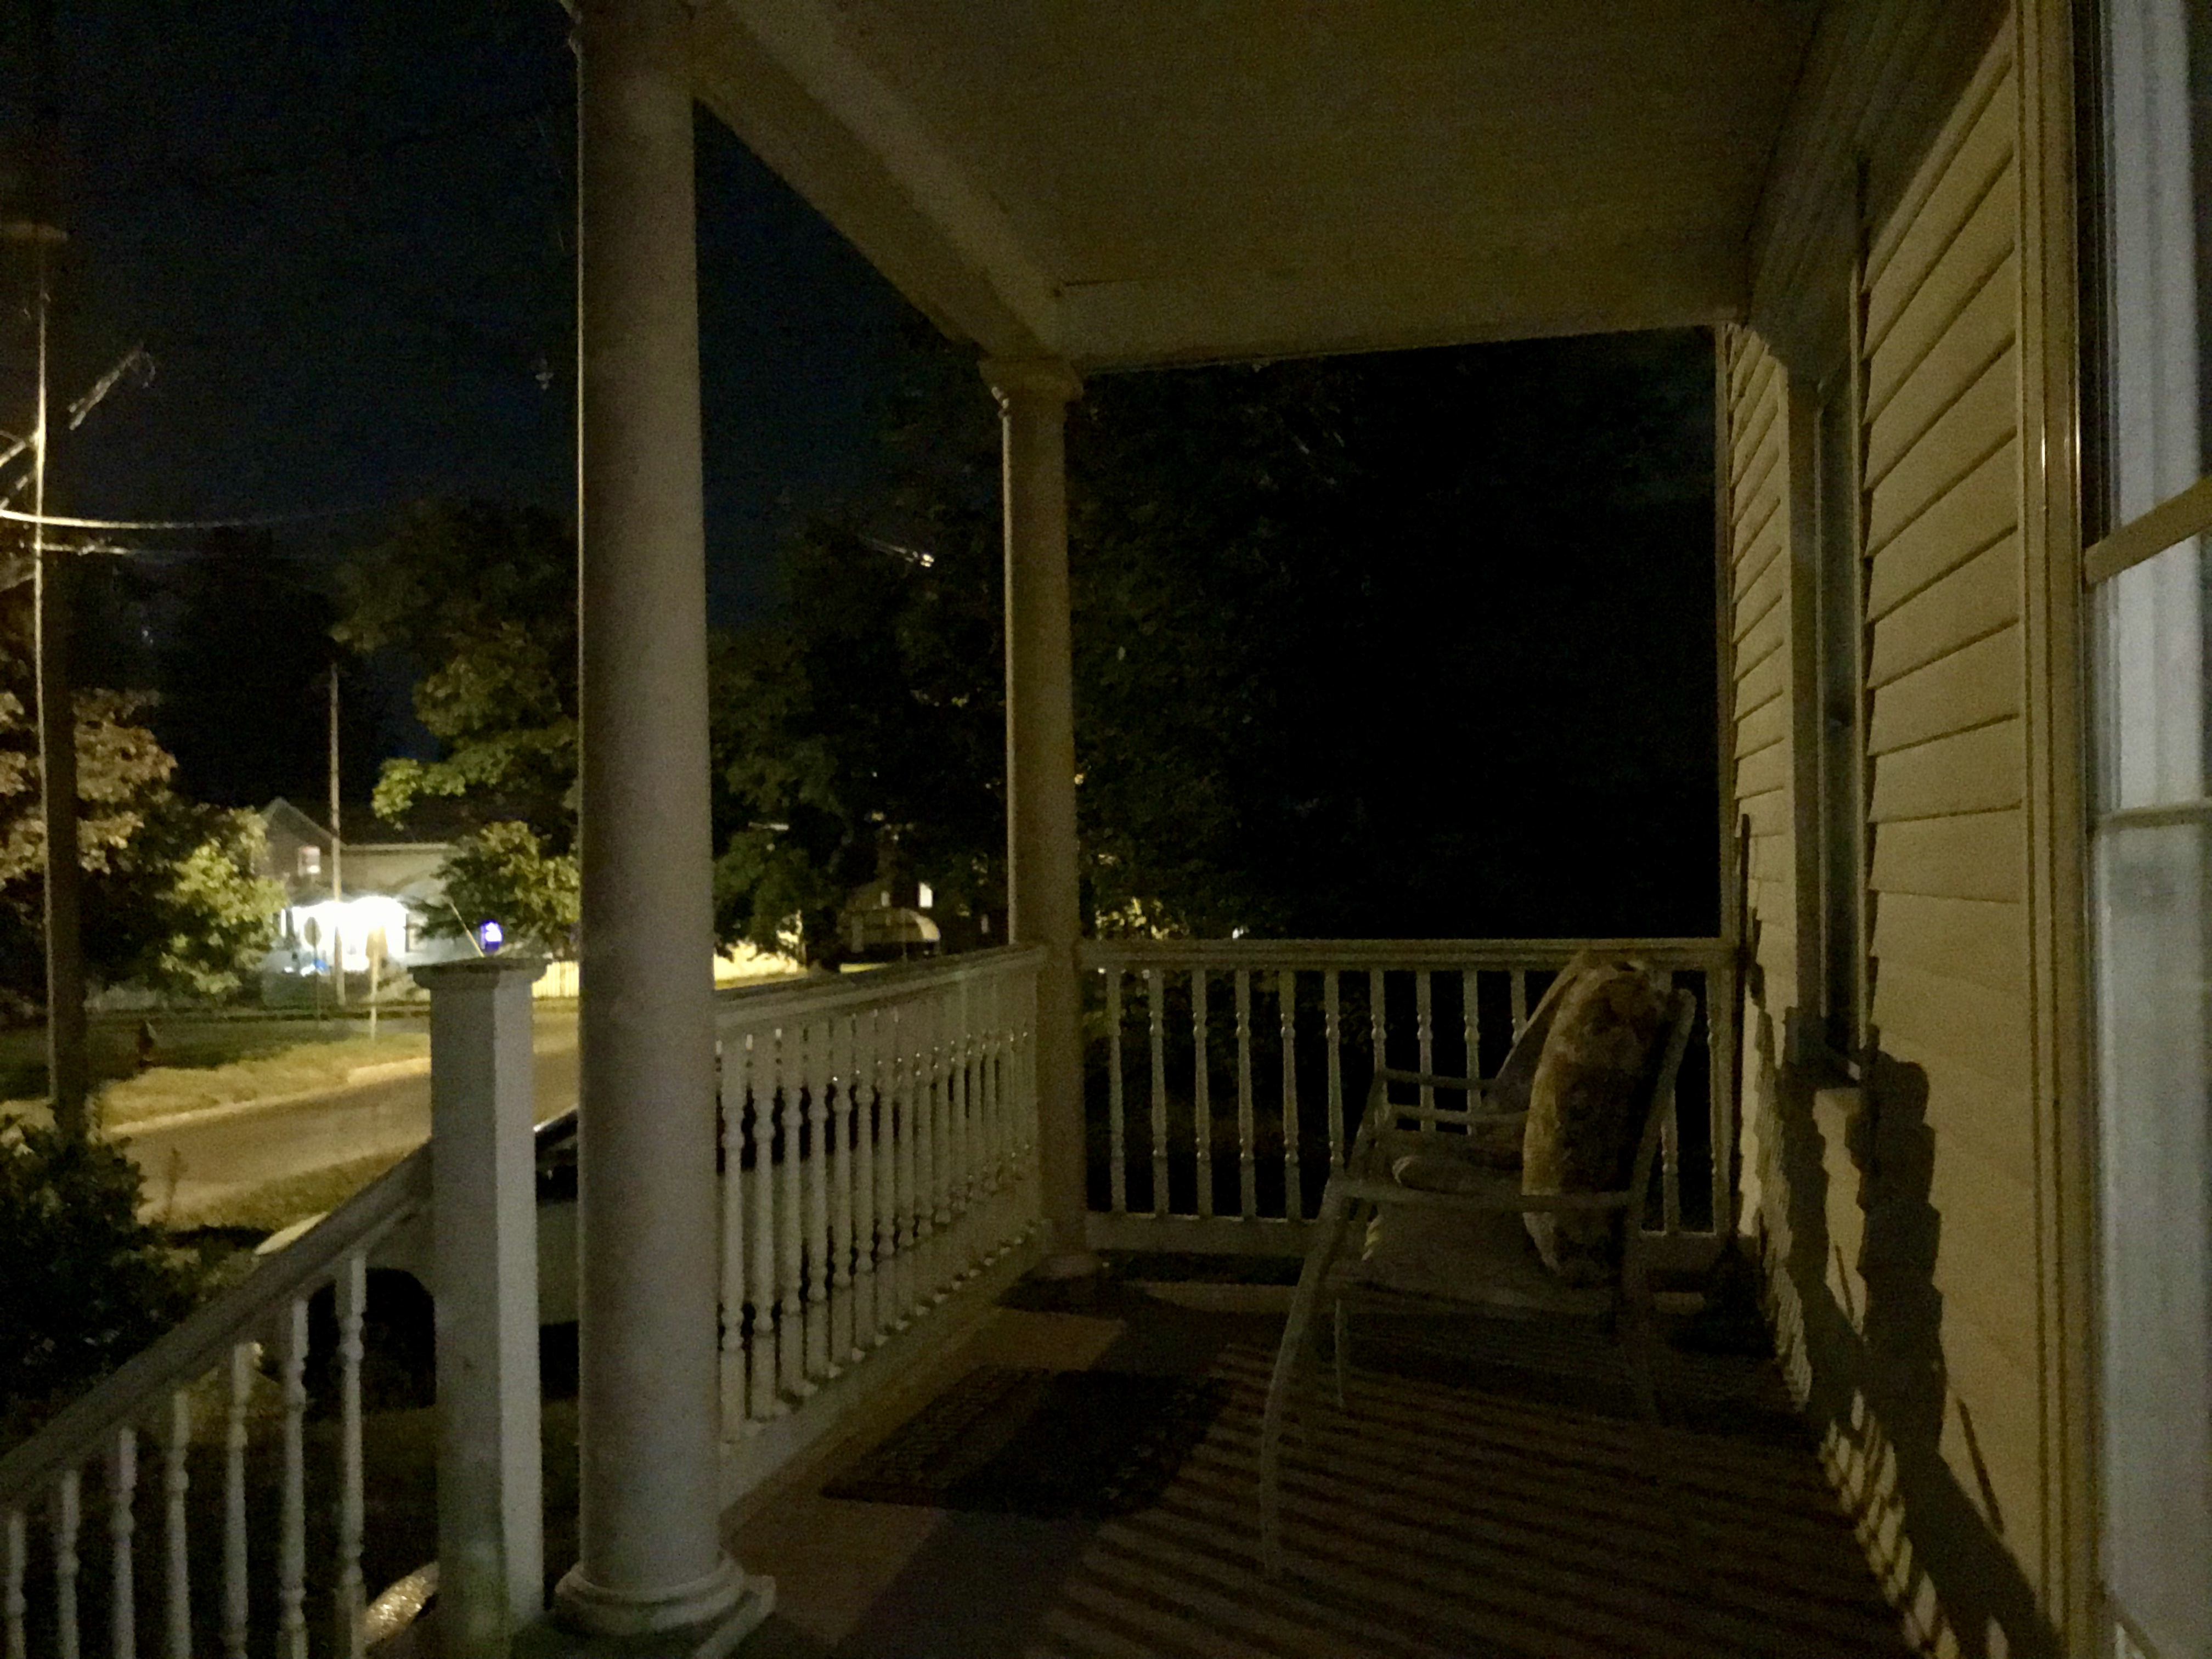 View at dusk of a front porch